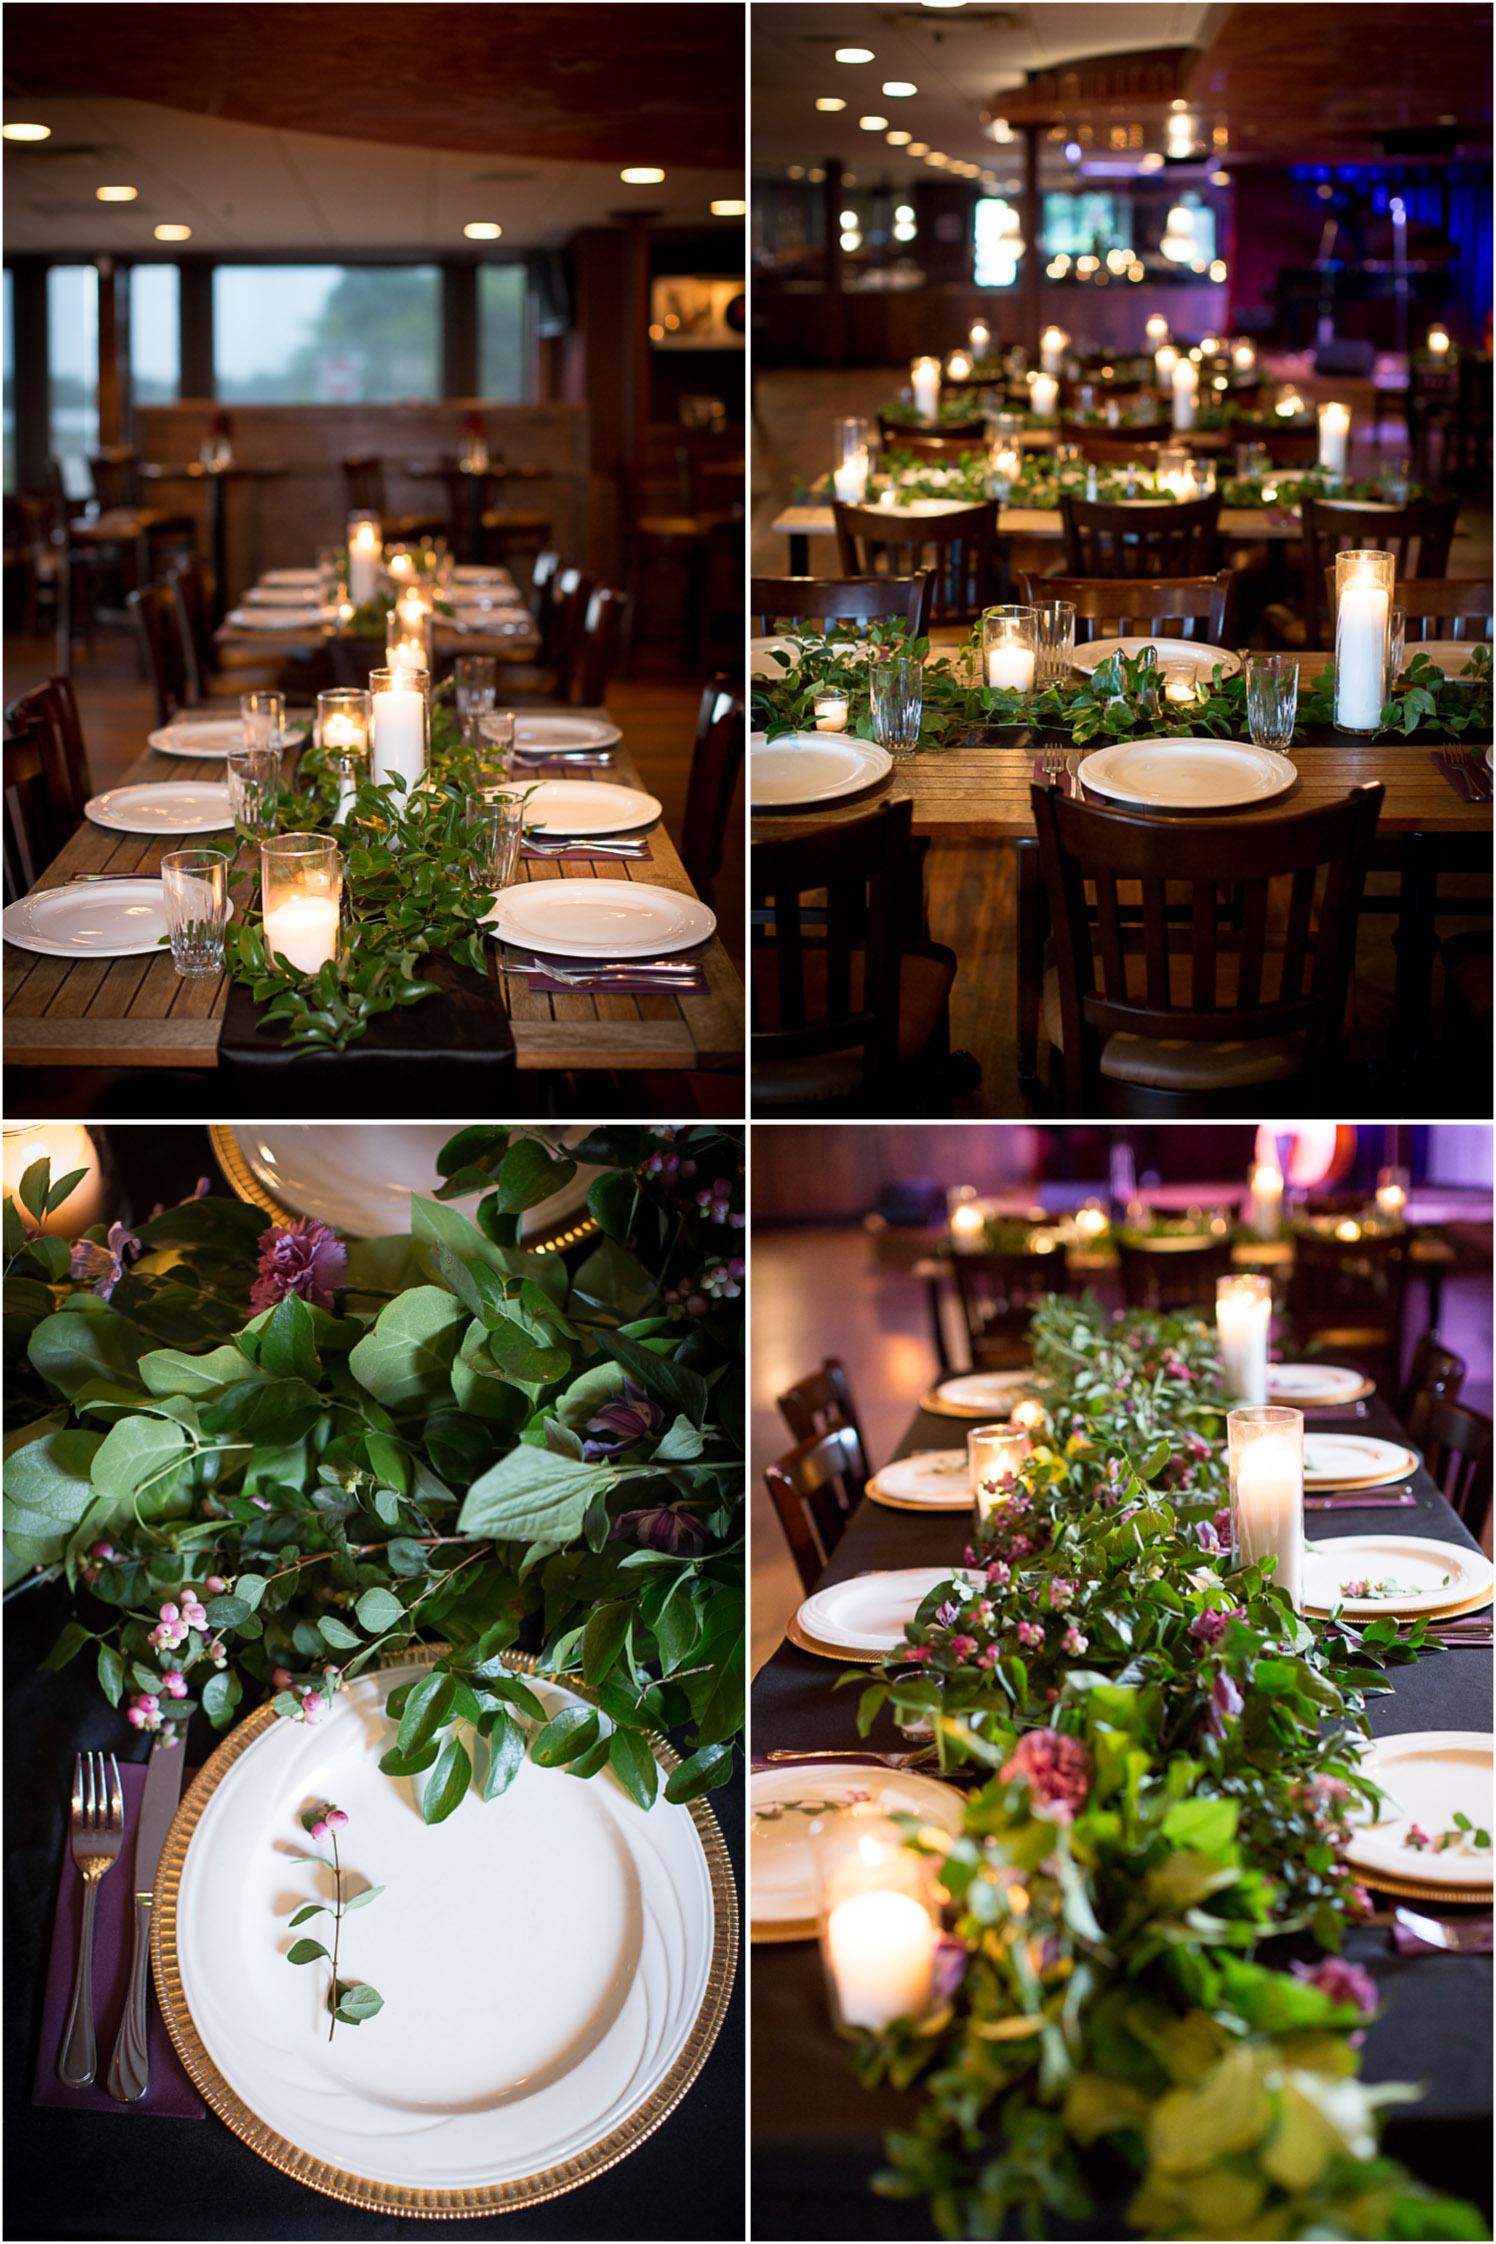 19-crooners-jazz-club-music-wedding-photographer-styled-shoot-reception-details-table-settings-greenery-candles-mahonen-photography.jpg